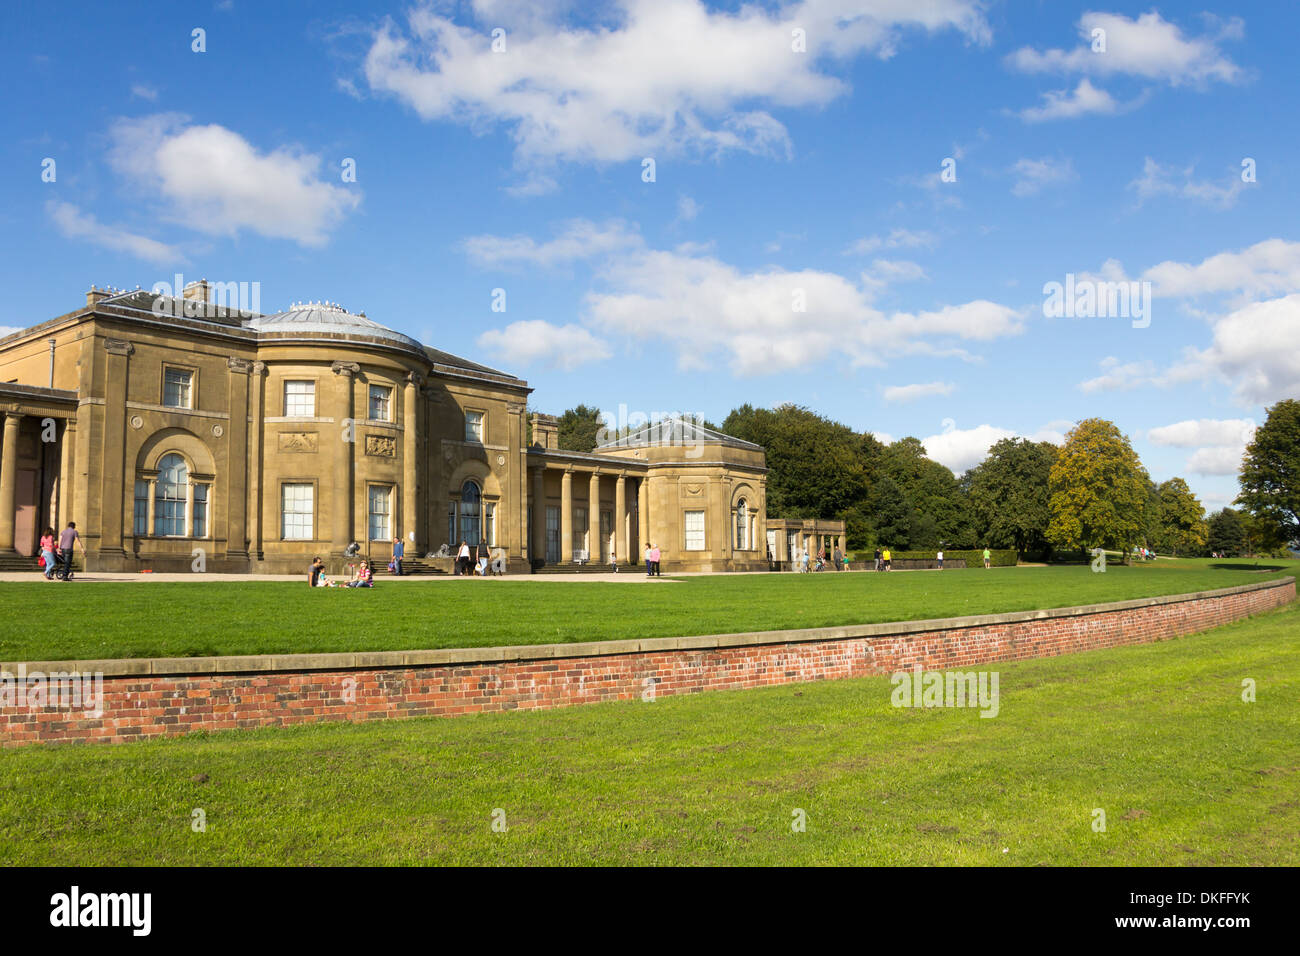 8205 cornwall - Heaton Hall In Heaton Park Manchester Is A Grade 1 Listed Late 18th Century